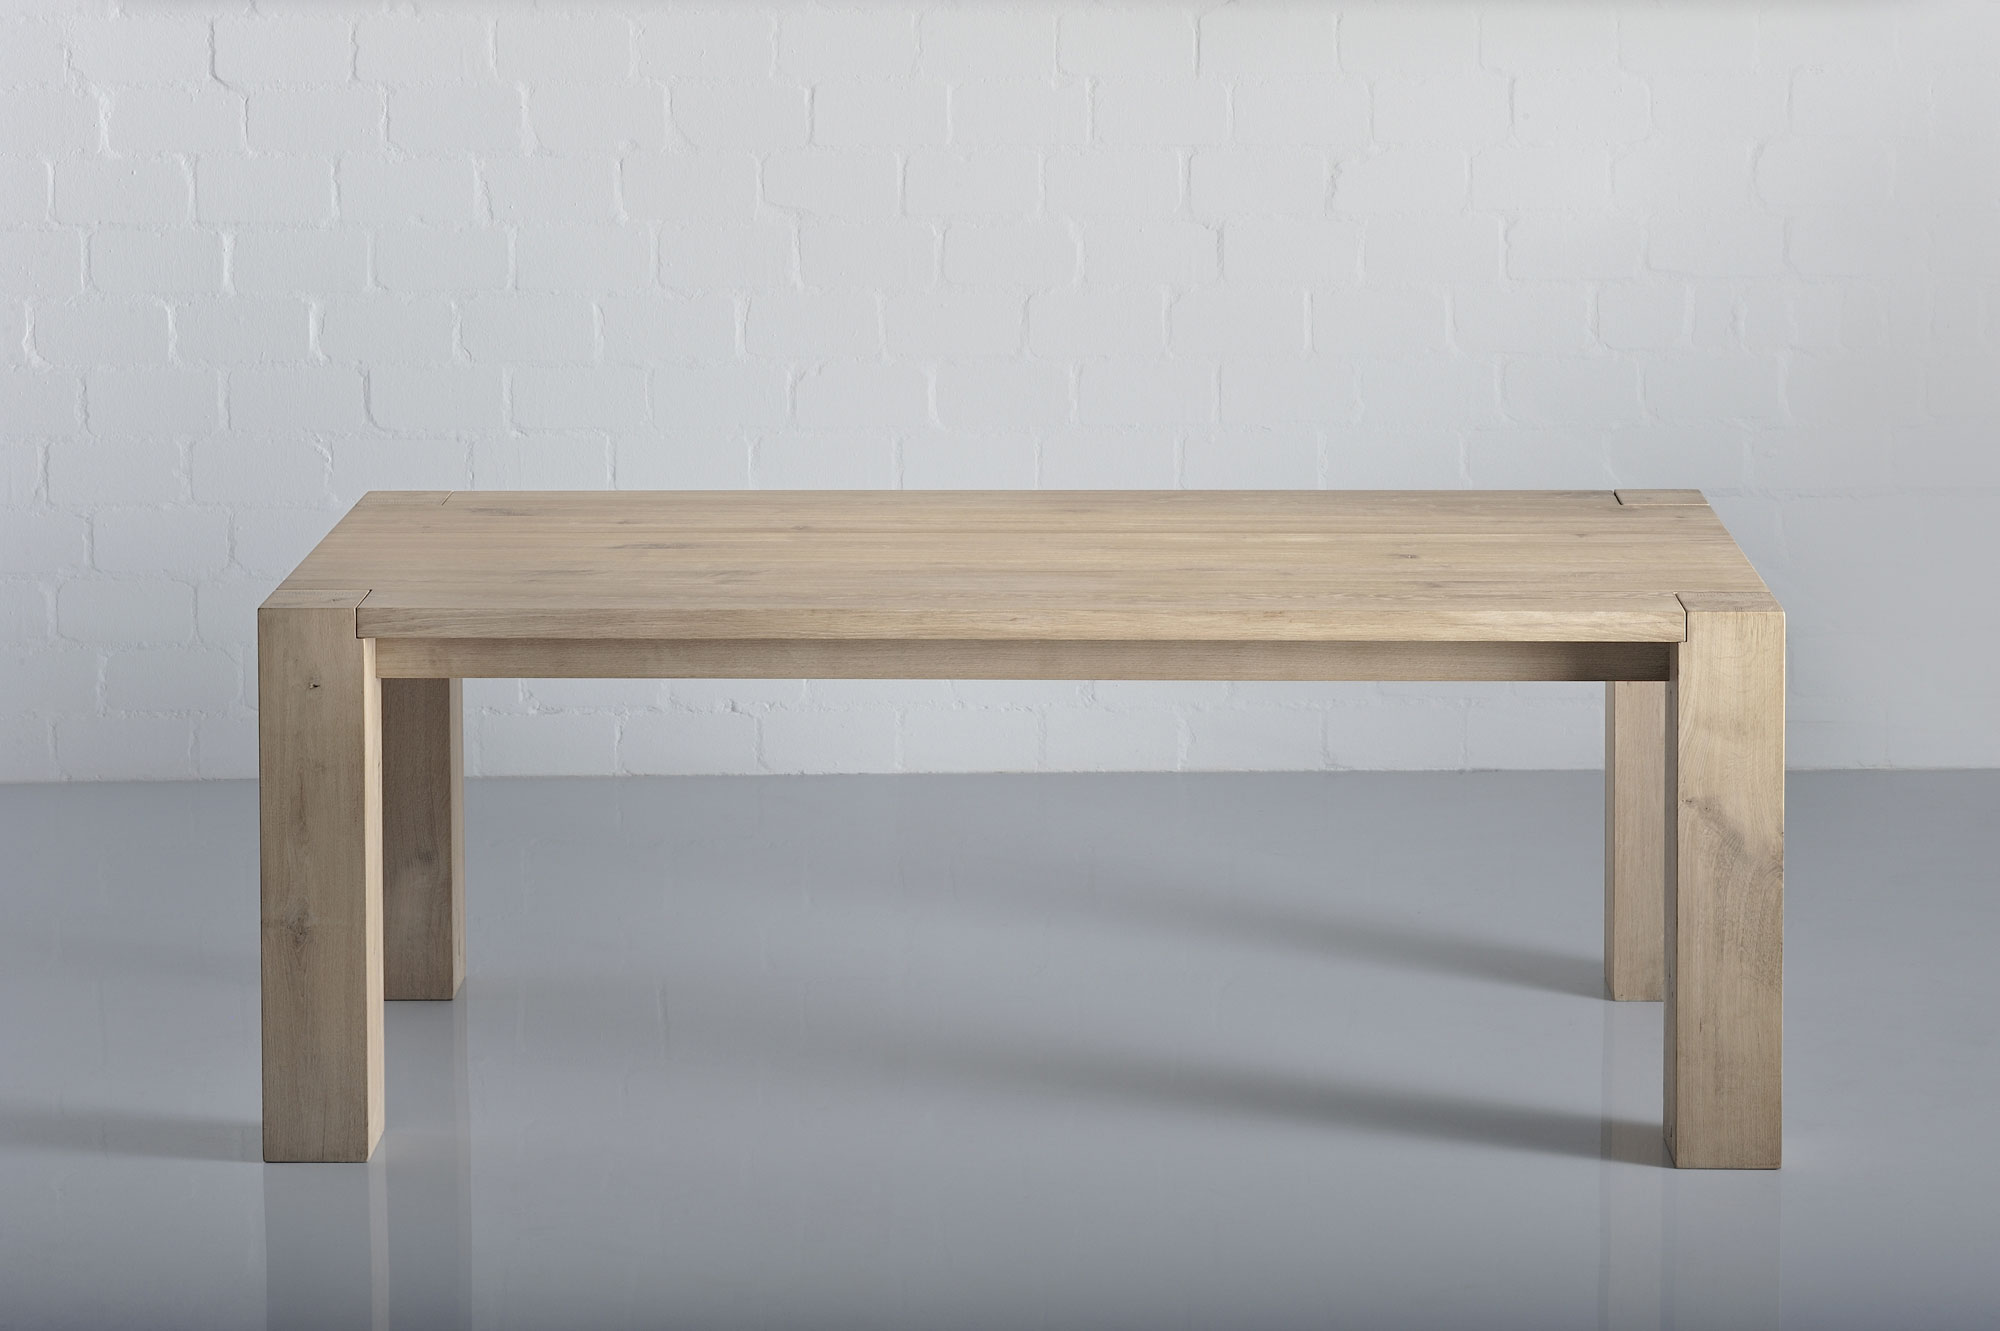 Rustic Solid Wood Table TAURUS 4 B14X14 1564 custom made in solid wood by vitamin design